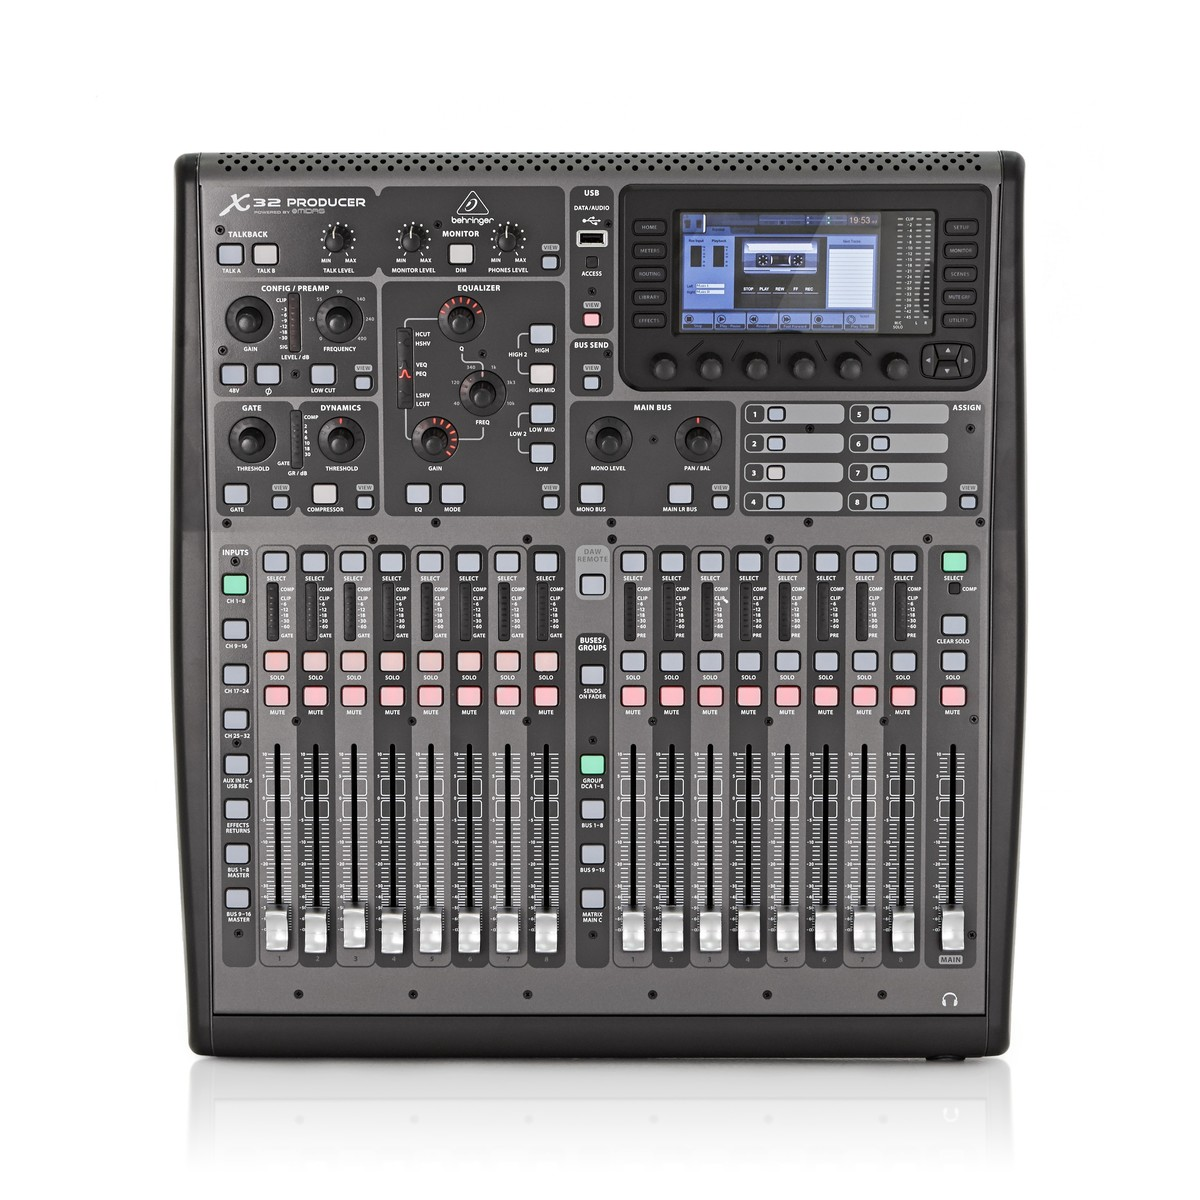 behringer x32 producer digital mixing console at gear4music. Black Bedroom Furniture Sets. Home Design Ideas